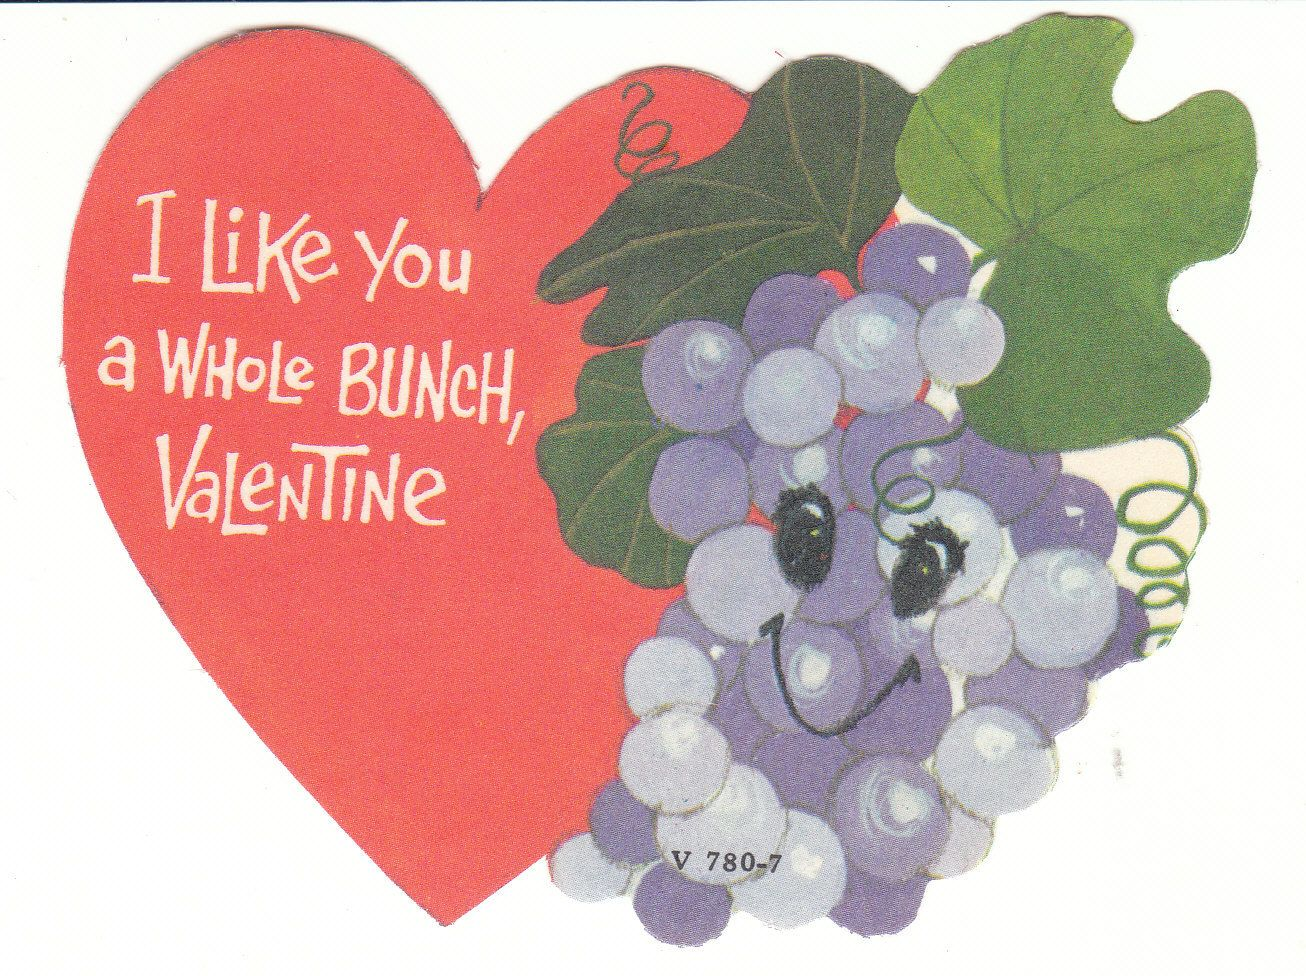 Anthropomorphic Grapes Vintage Valentine 1960's Unused Die Cut by BirdhouseBooks on Etsy